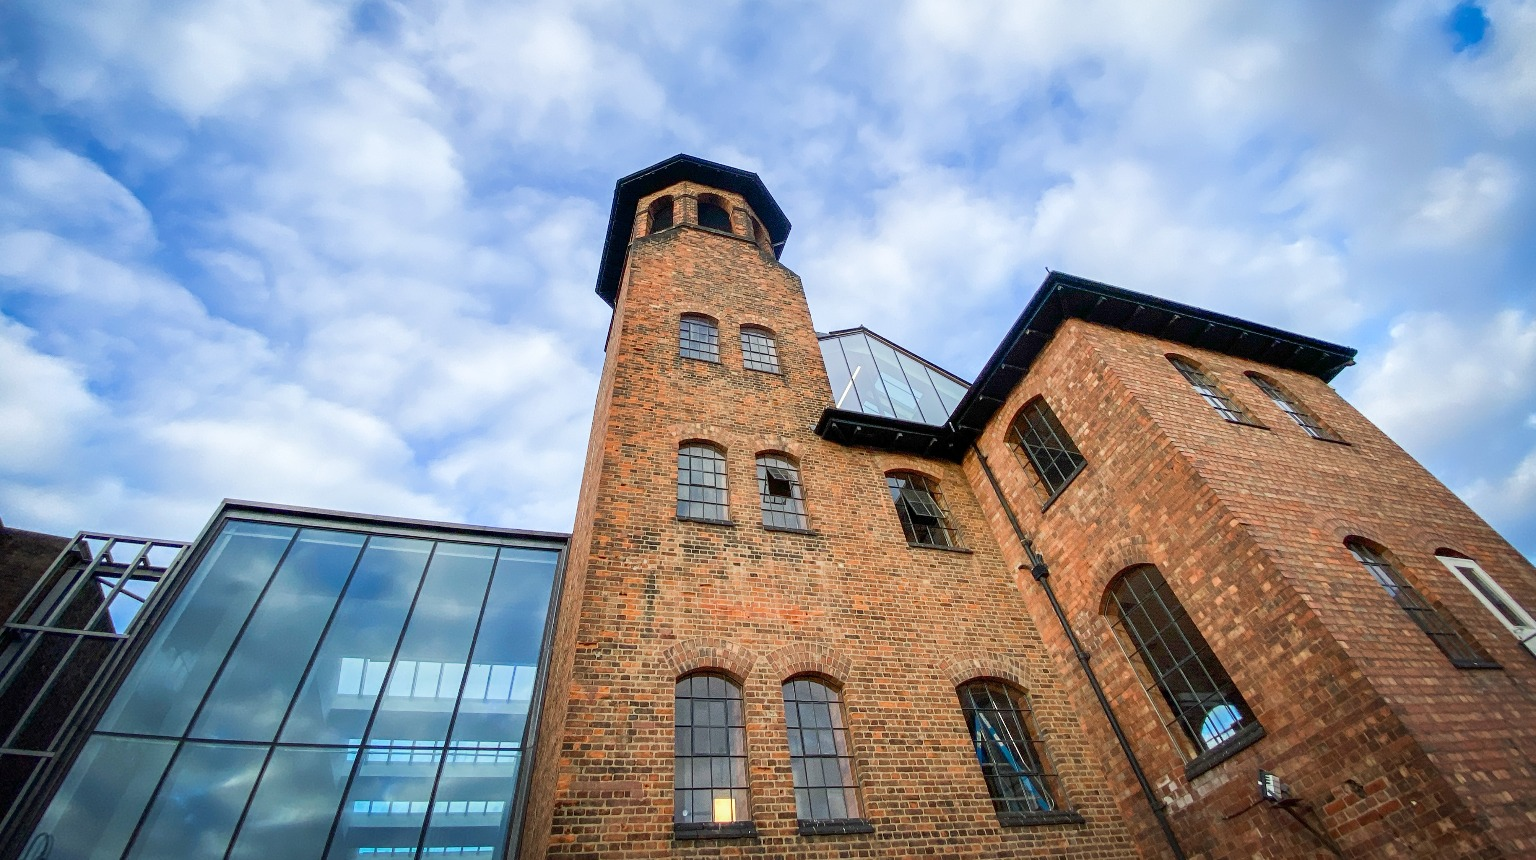 Museum of Making at Derby Silk Mill